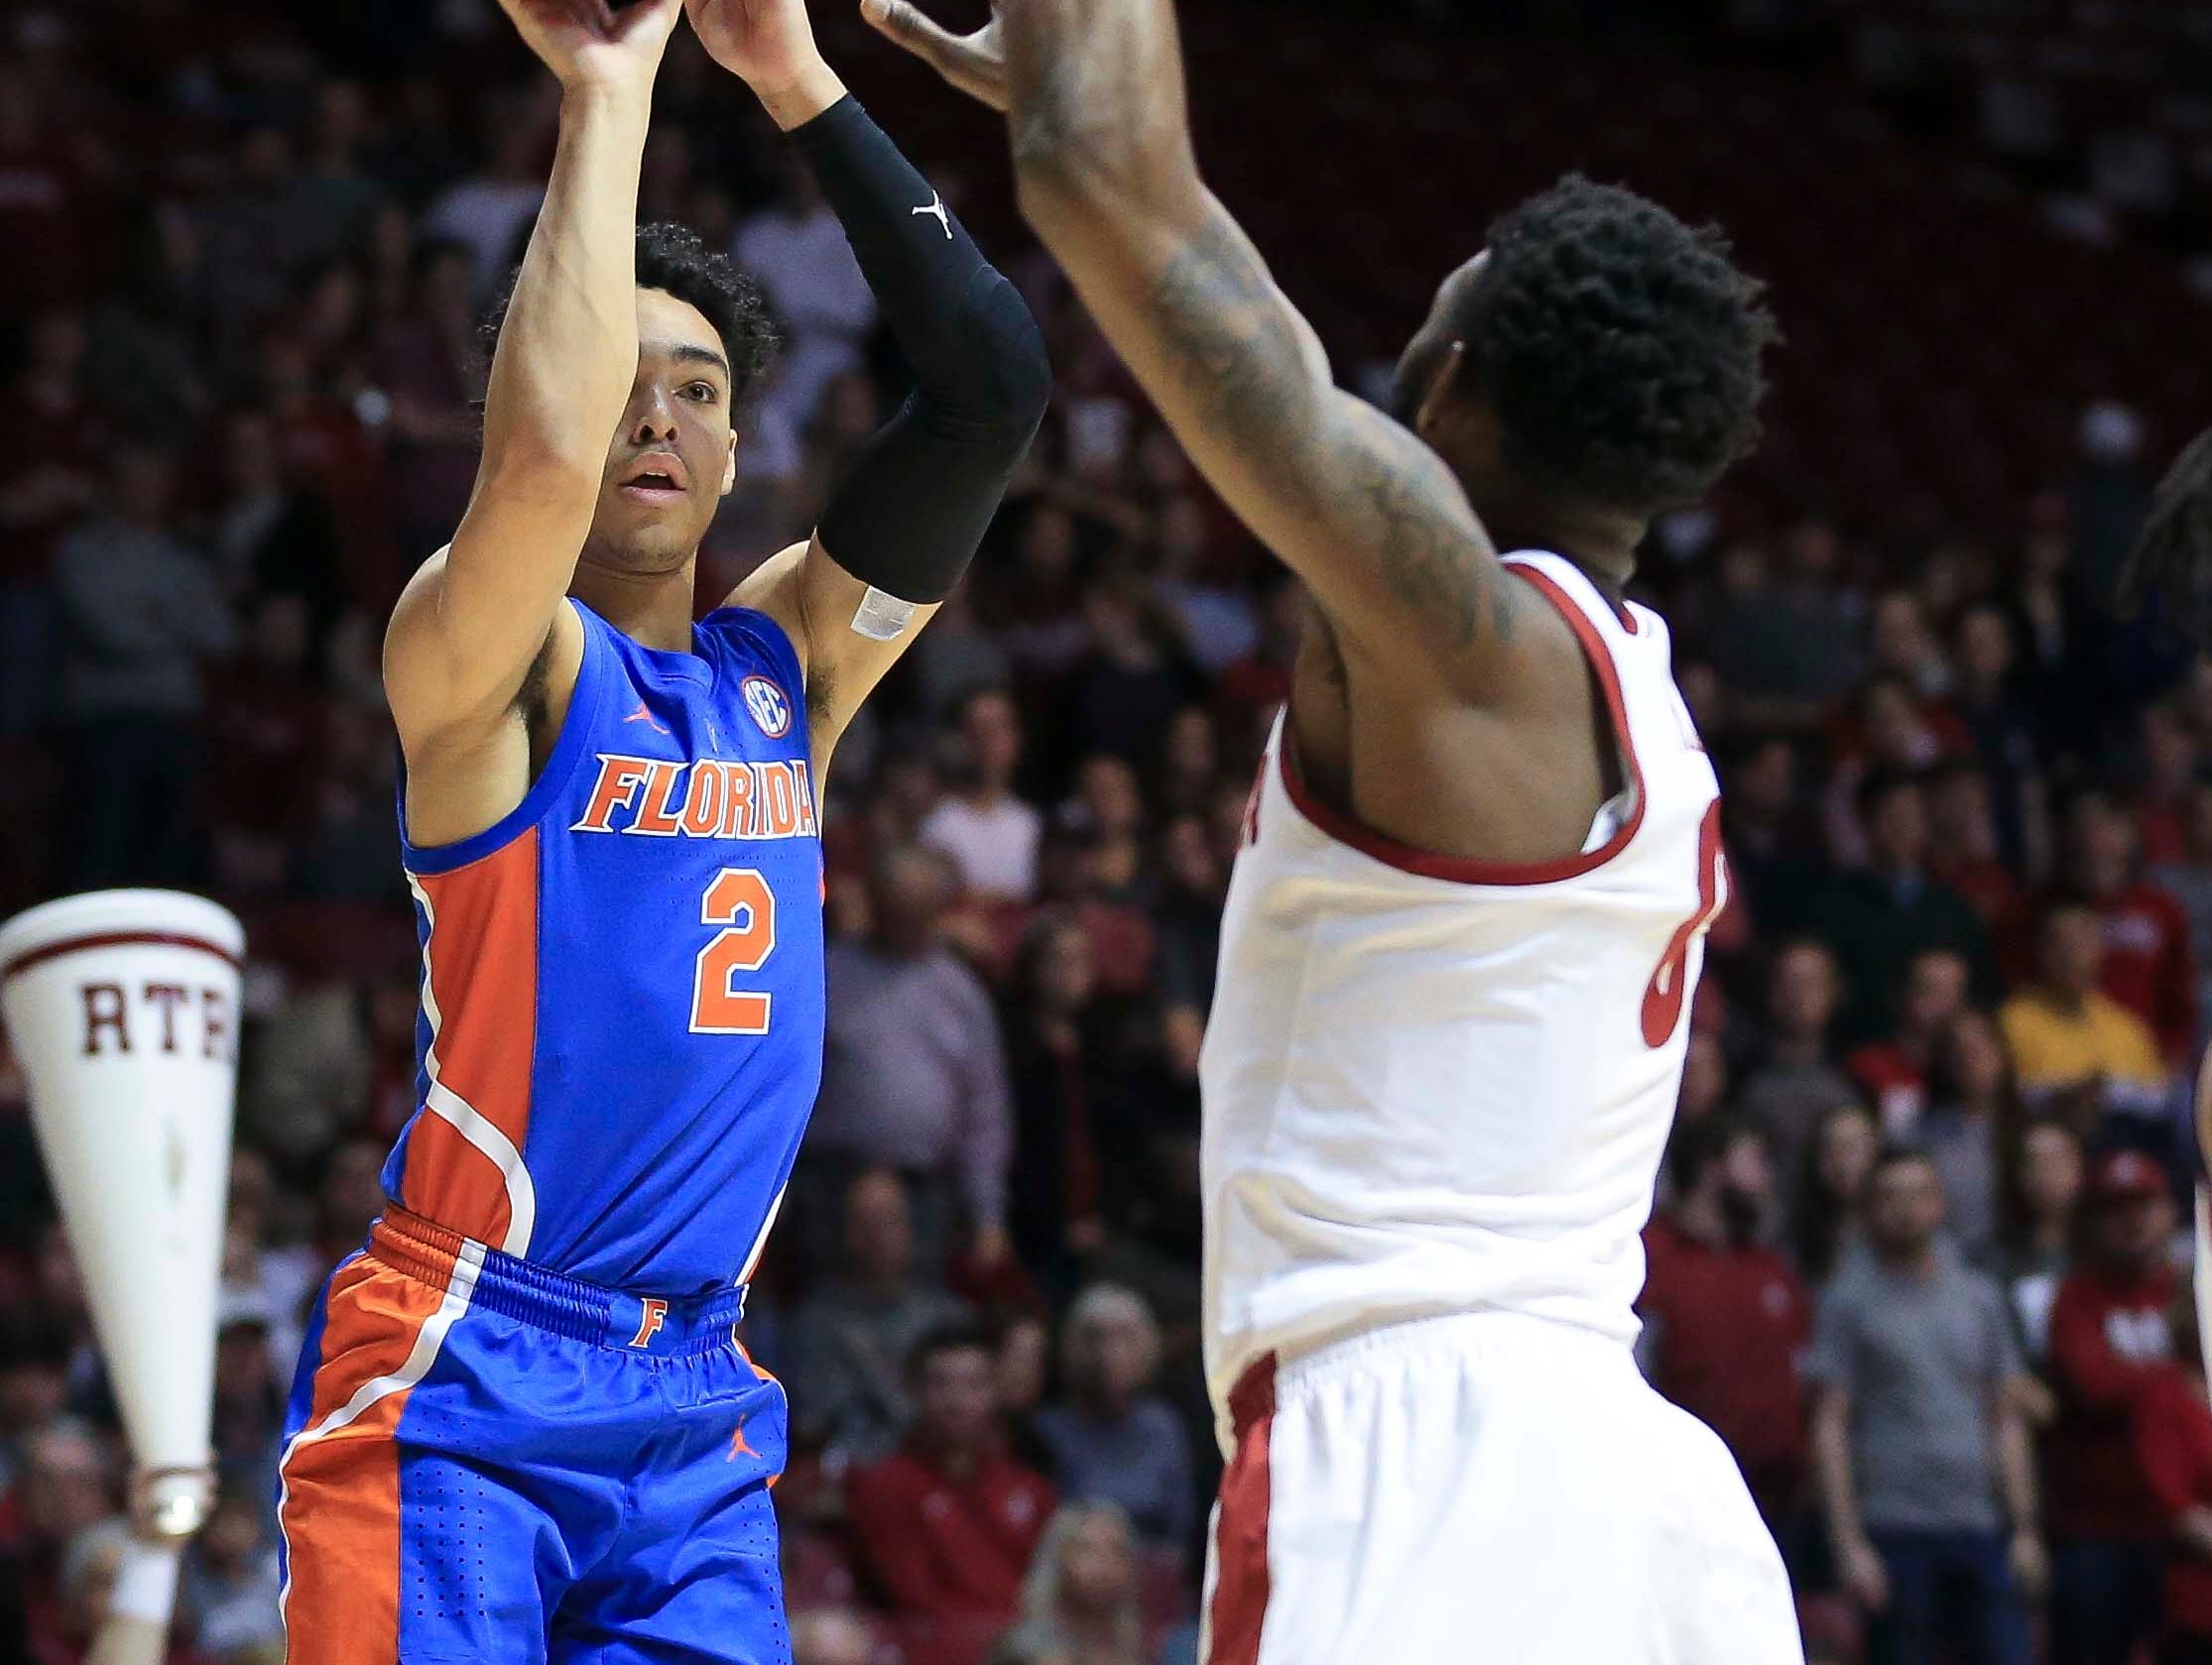 Feb 16, 2019; Tuscaloosa, AL, USA; Florida Gators guard Andrew Nembhard (2) shoots against Alabama Crimson Tide forward Donta Hall (0) during the first half at Coleman Coliseum. Mandatory Credit: Marvin Gentry-USA TODAY Sports